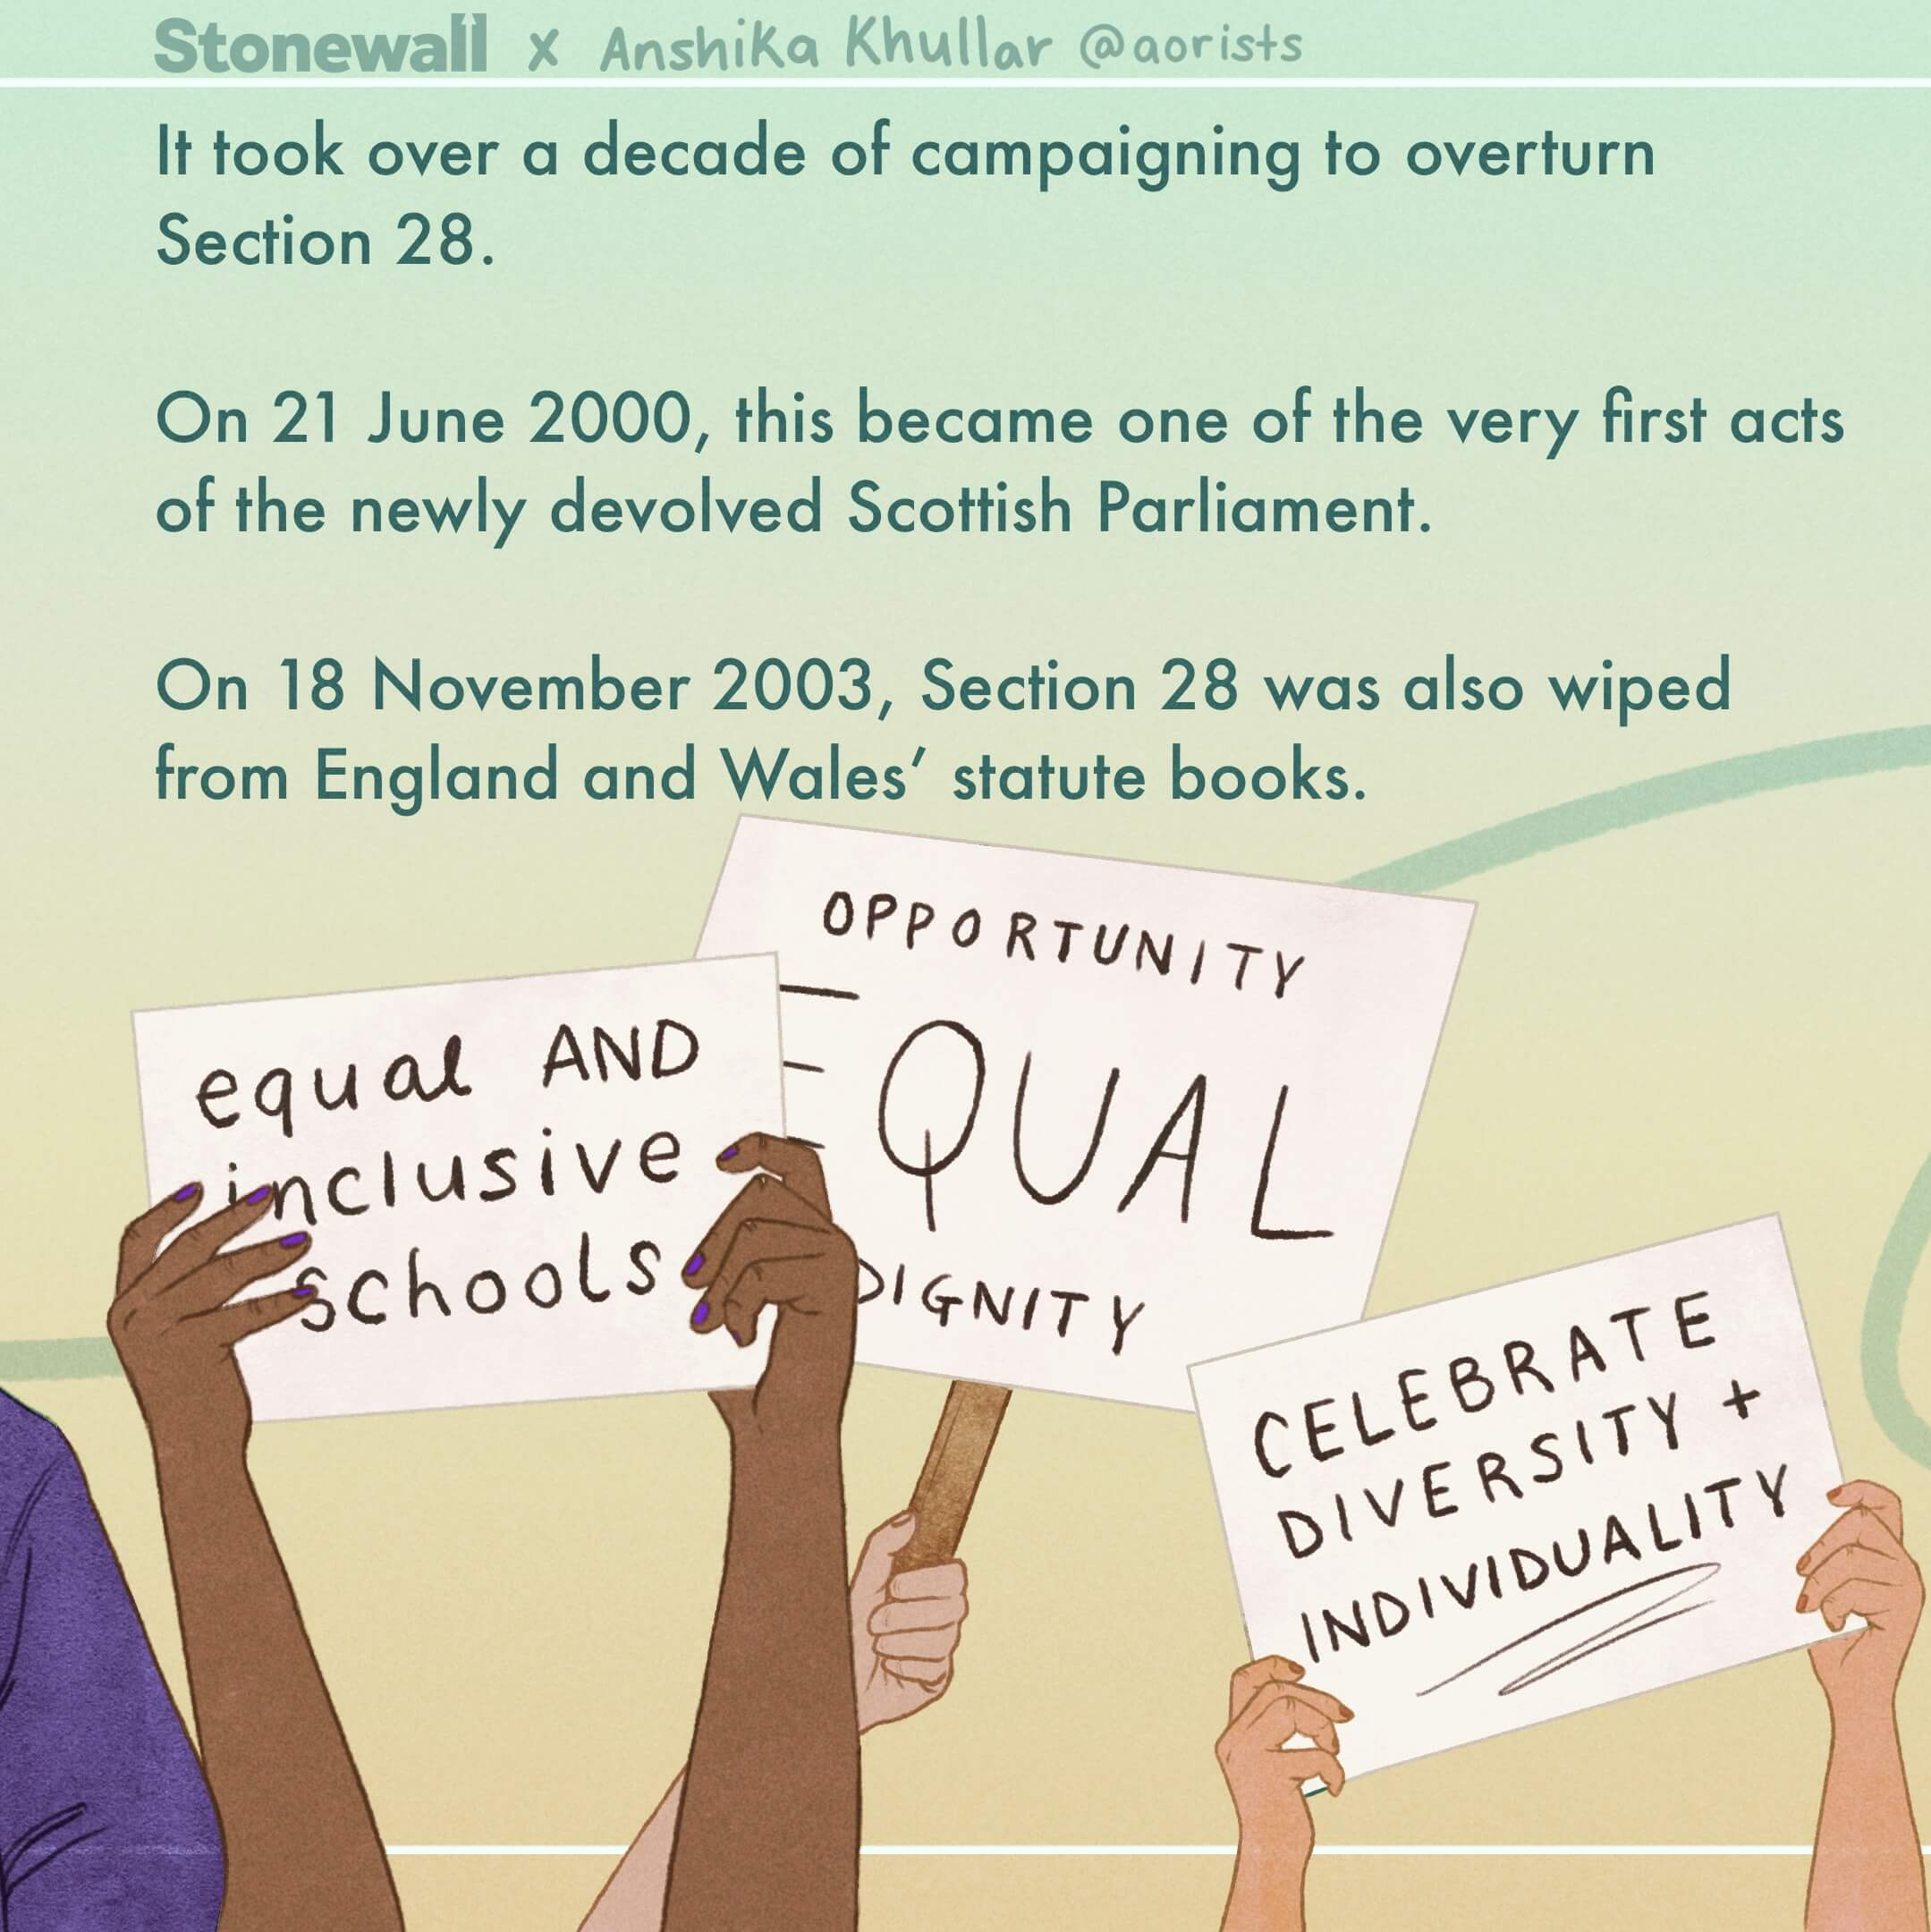 It took over a decade of campaigning to overturn Section 28. On 21 June 2000, this became one of the very first acts of the newly devolved Scottish Parliament. On 18 November 2003, Section 28 was also wiped from England and Wales' statute books. Illustration of: a row of people holding up placards with inclusive education messaging on them as if at a protest